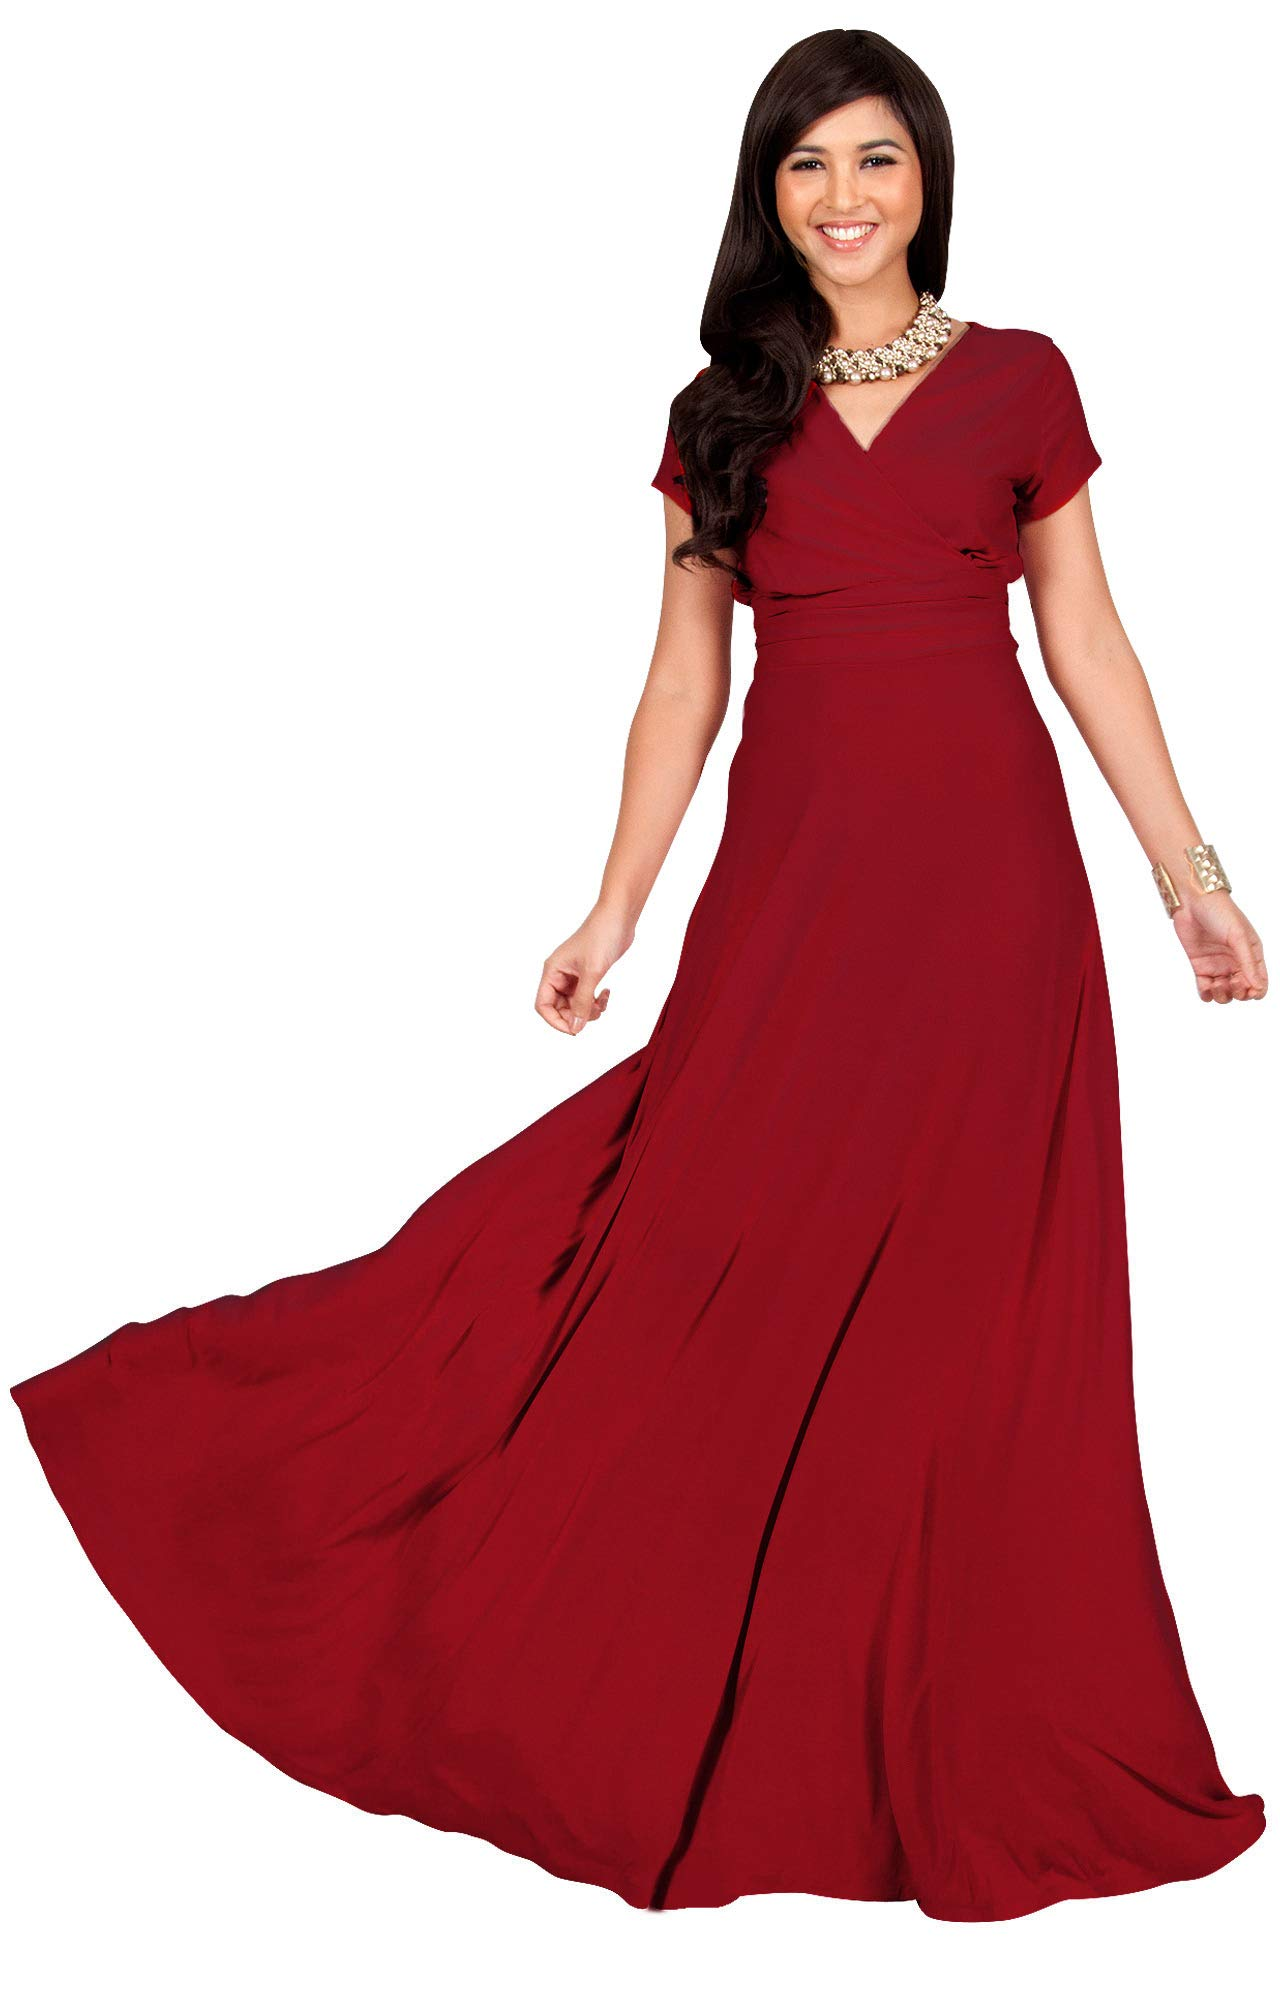 b0b58413d49 KOH KOH Plus Size Womens Long Cap Short Sleeve V-neck Flowy Cocktail  Slimming Summer Sexy Casual Formal Sun Sundress Work Cute Gown Gowns Maxi  Dress Dresses ...